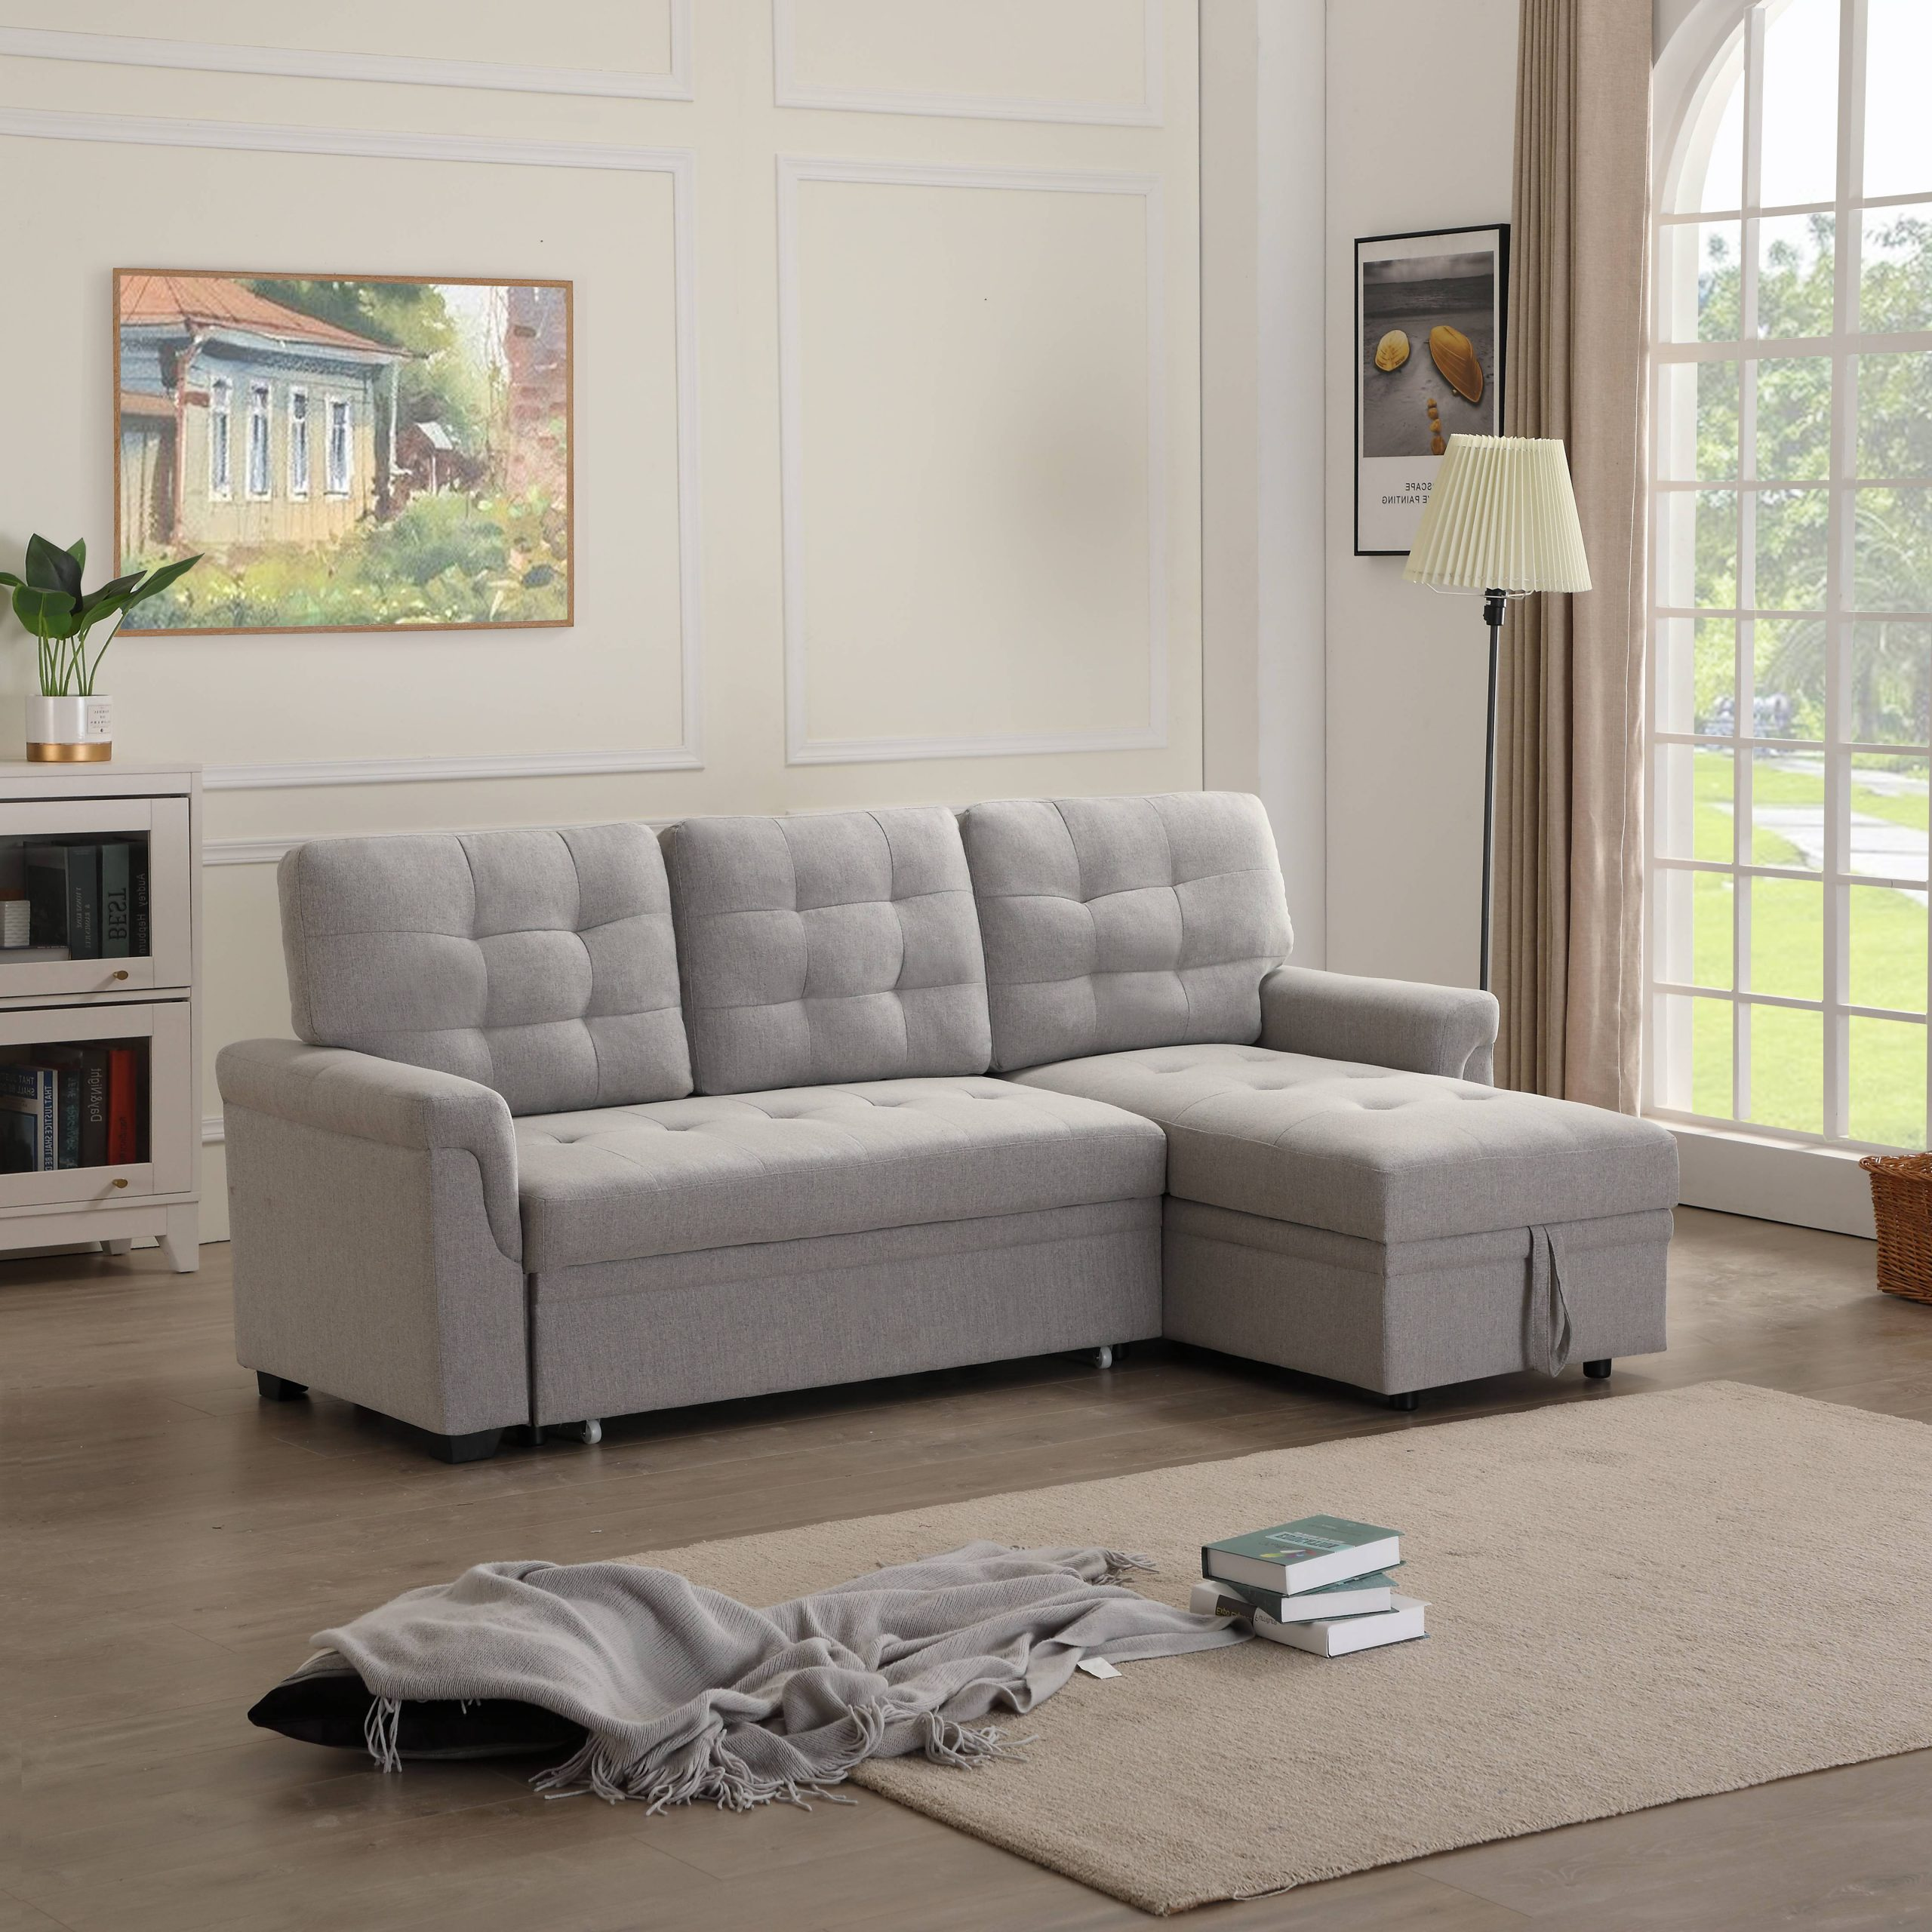 """Easton Small Space Sectional Futon Sofas Pertaining To Fashionable 86""""W Modern Sectional Sofa Bed With Reversible Chaise, L (View 11 of 25)"""